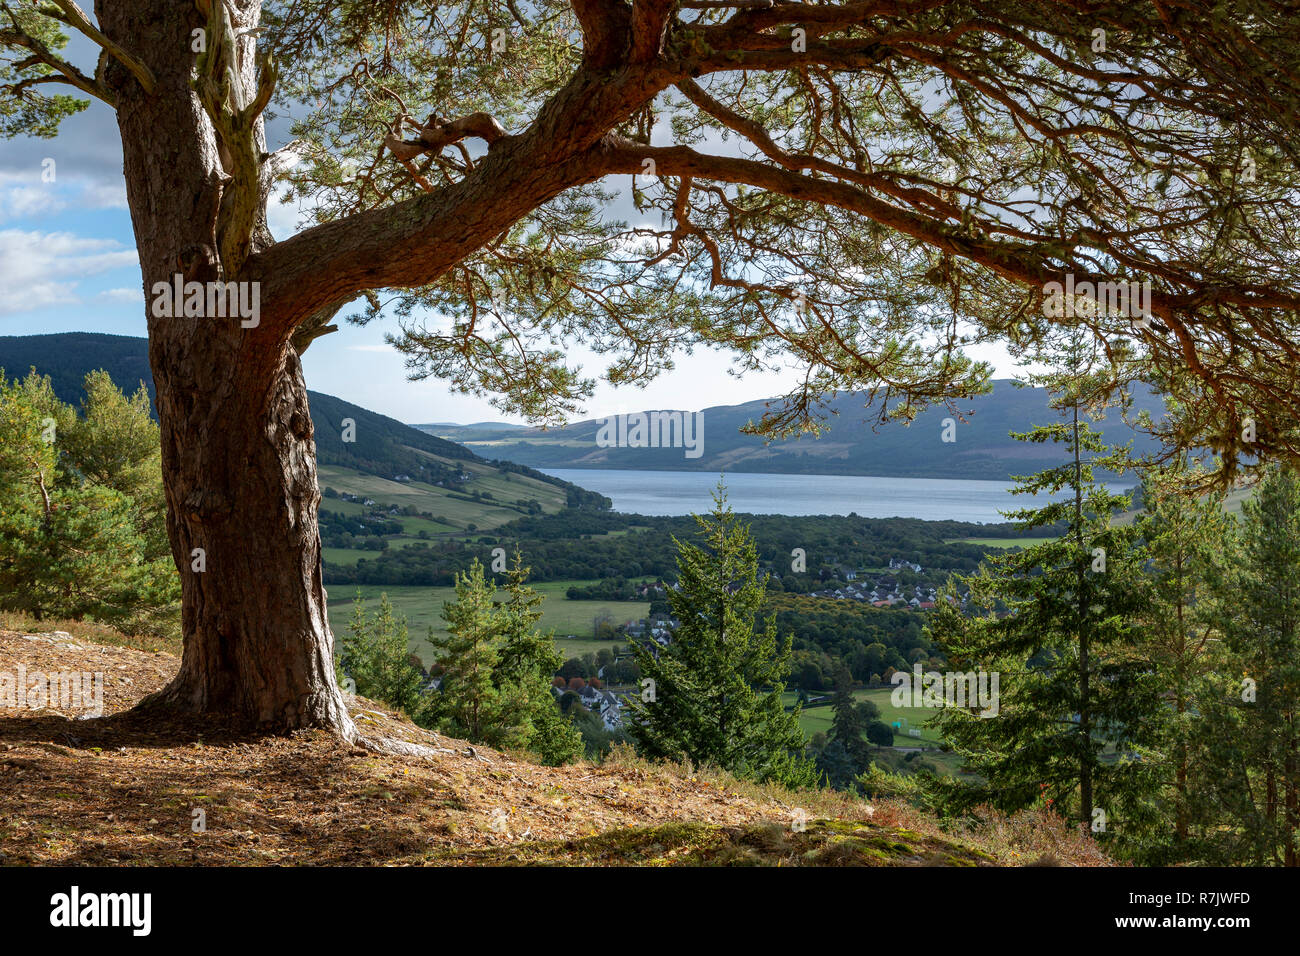 Urquhart Bay and Loch Ness from the Craigmonie Viewpoint, Drumnadrochit, Scotland - Stock Image